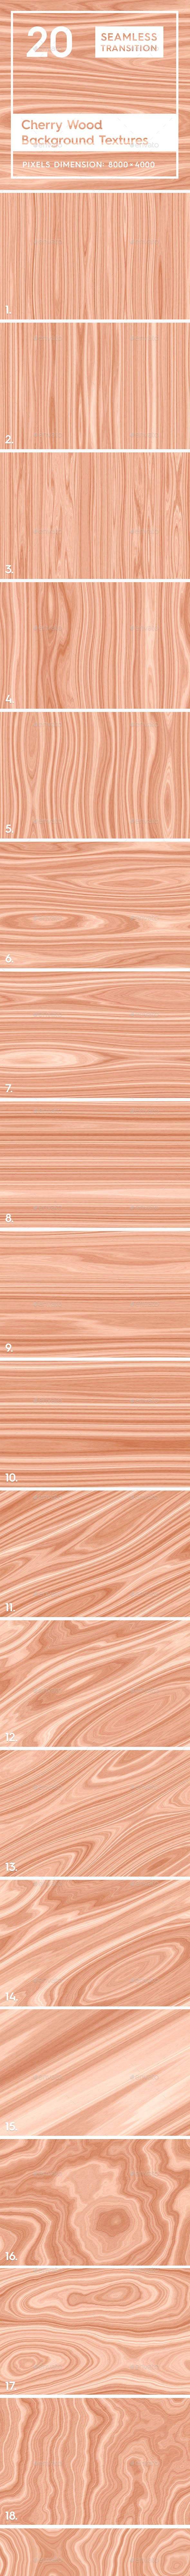 20 Cherry Wood Background Textures - 3DOcean Item for Sale